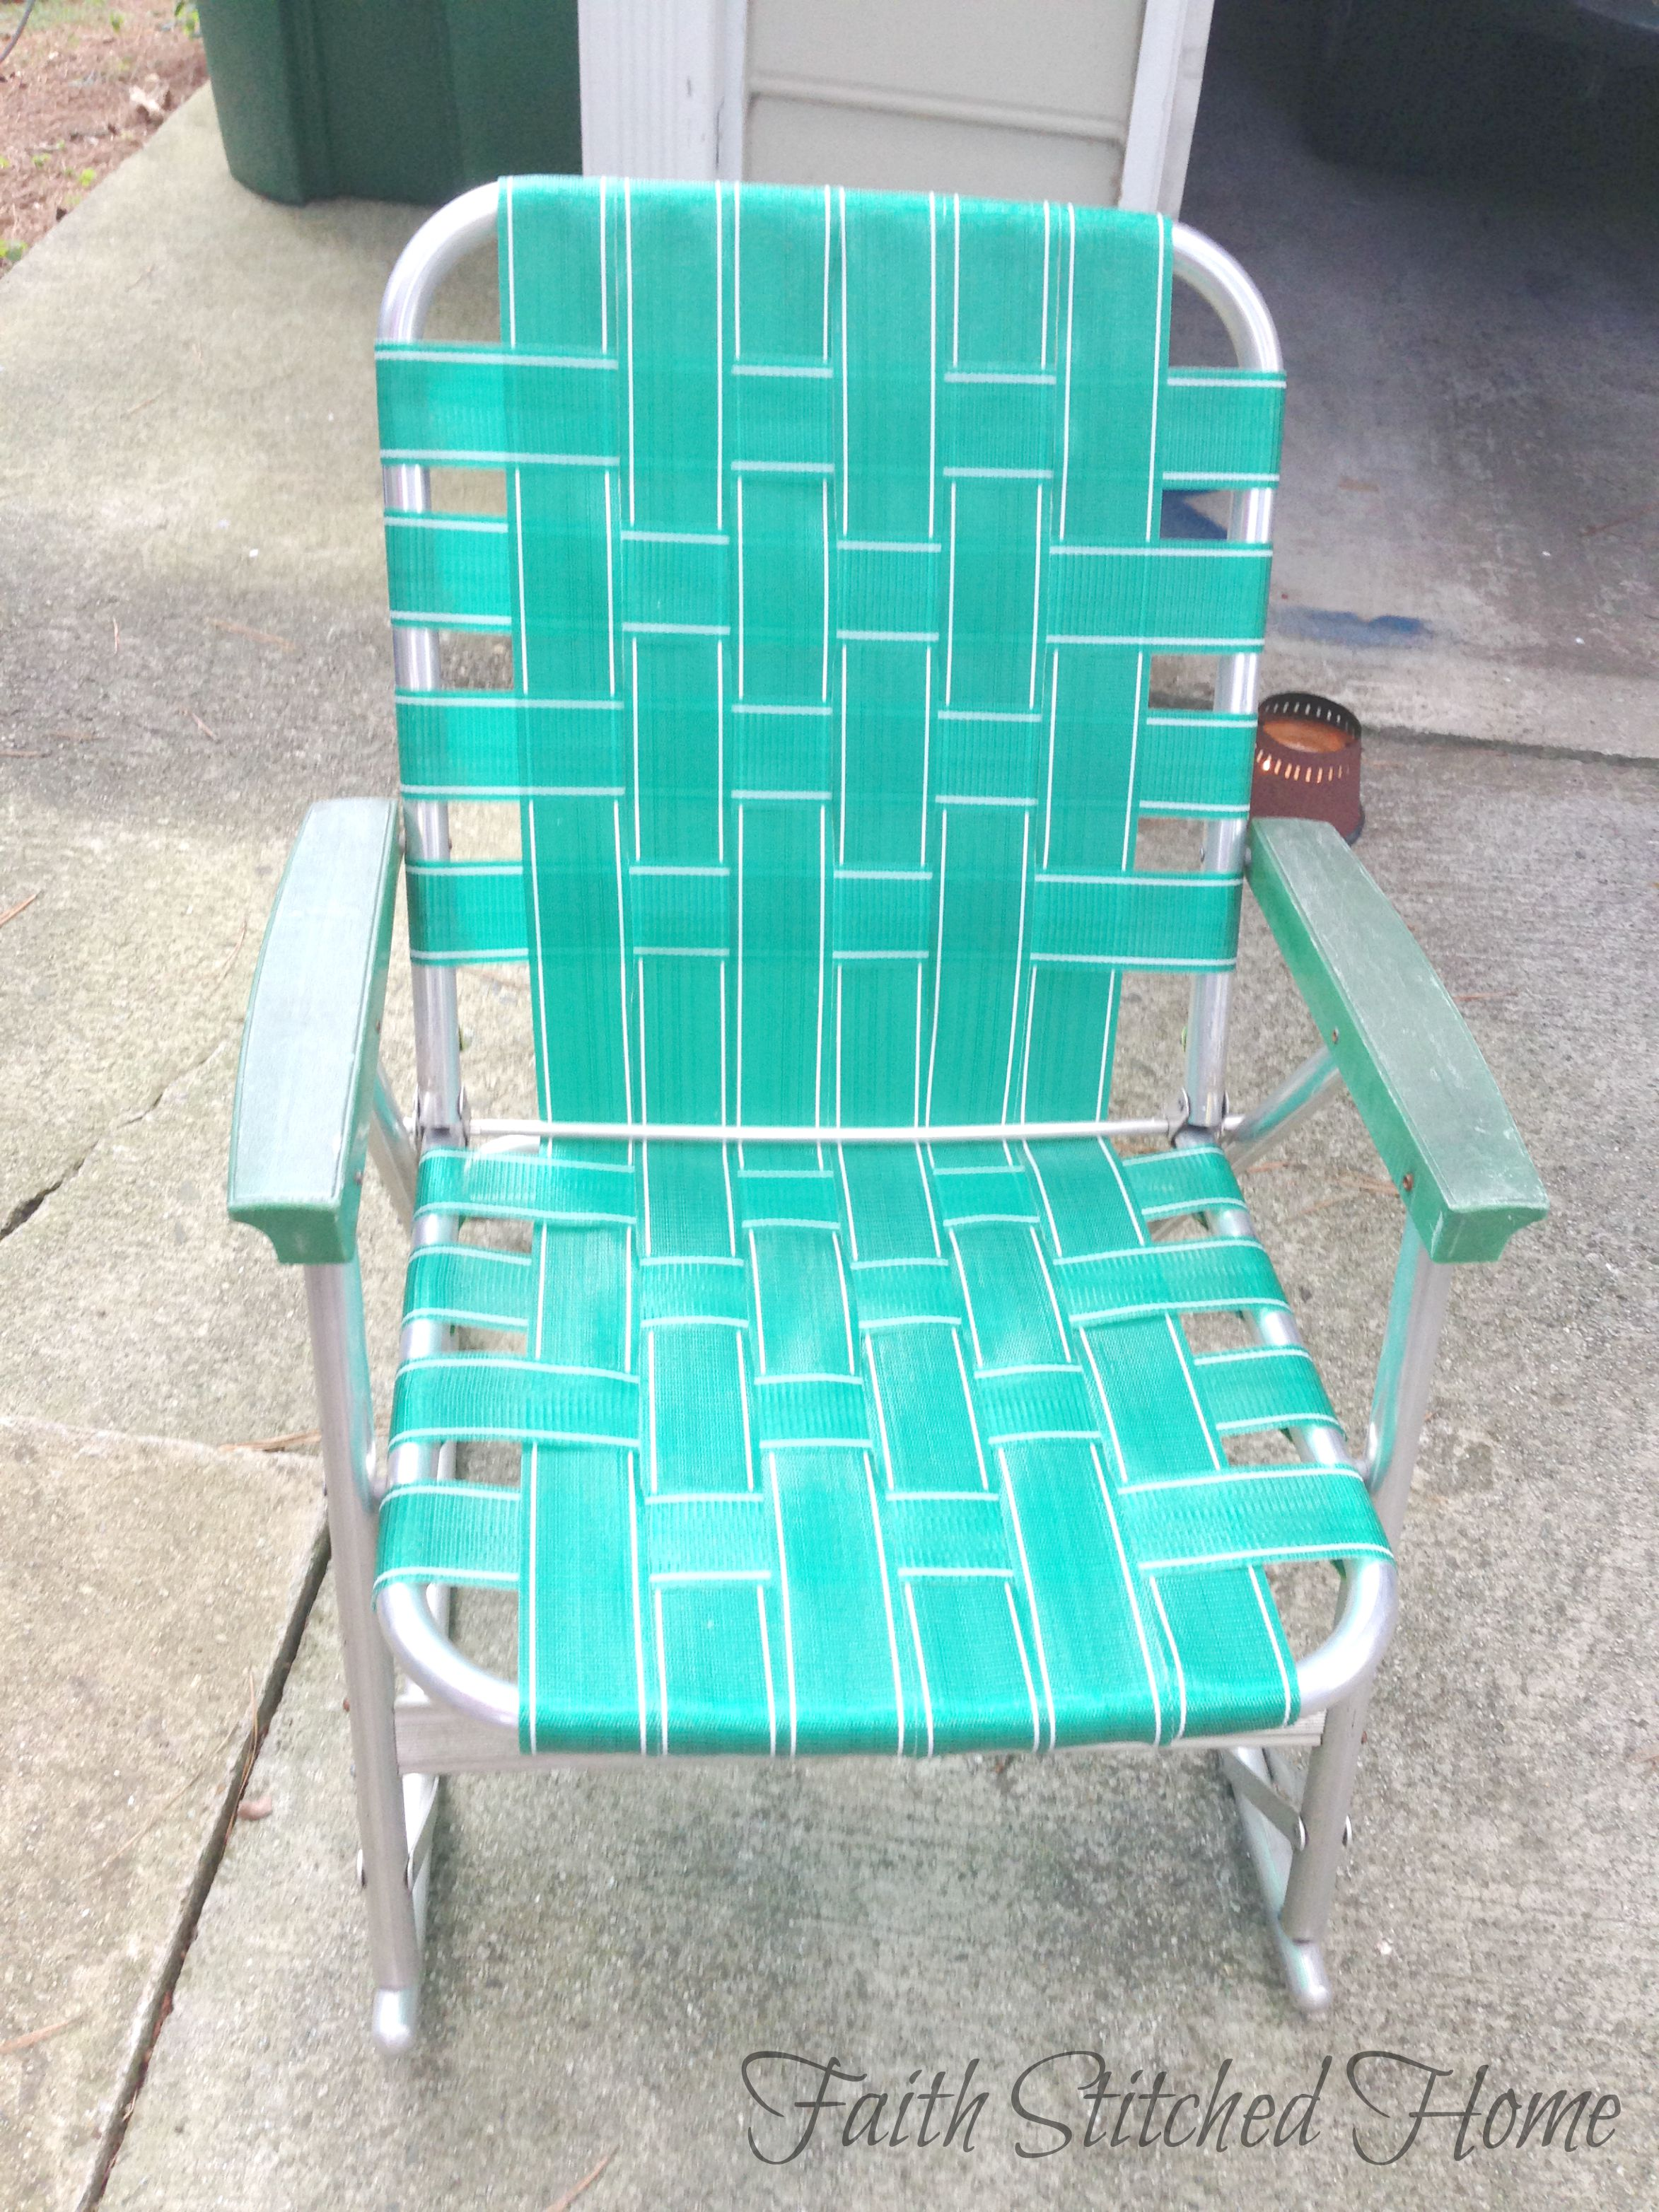 Repairing a Vintage Webbed Lawn Chair  Faith Stitched Home